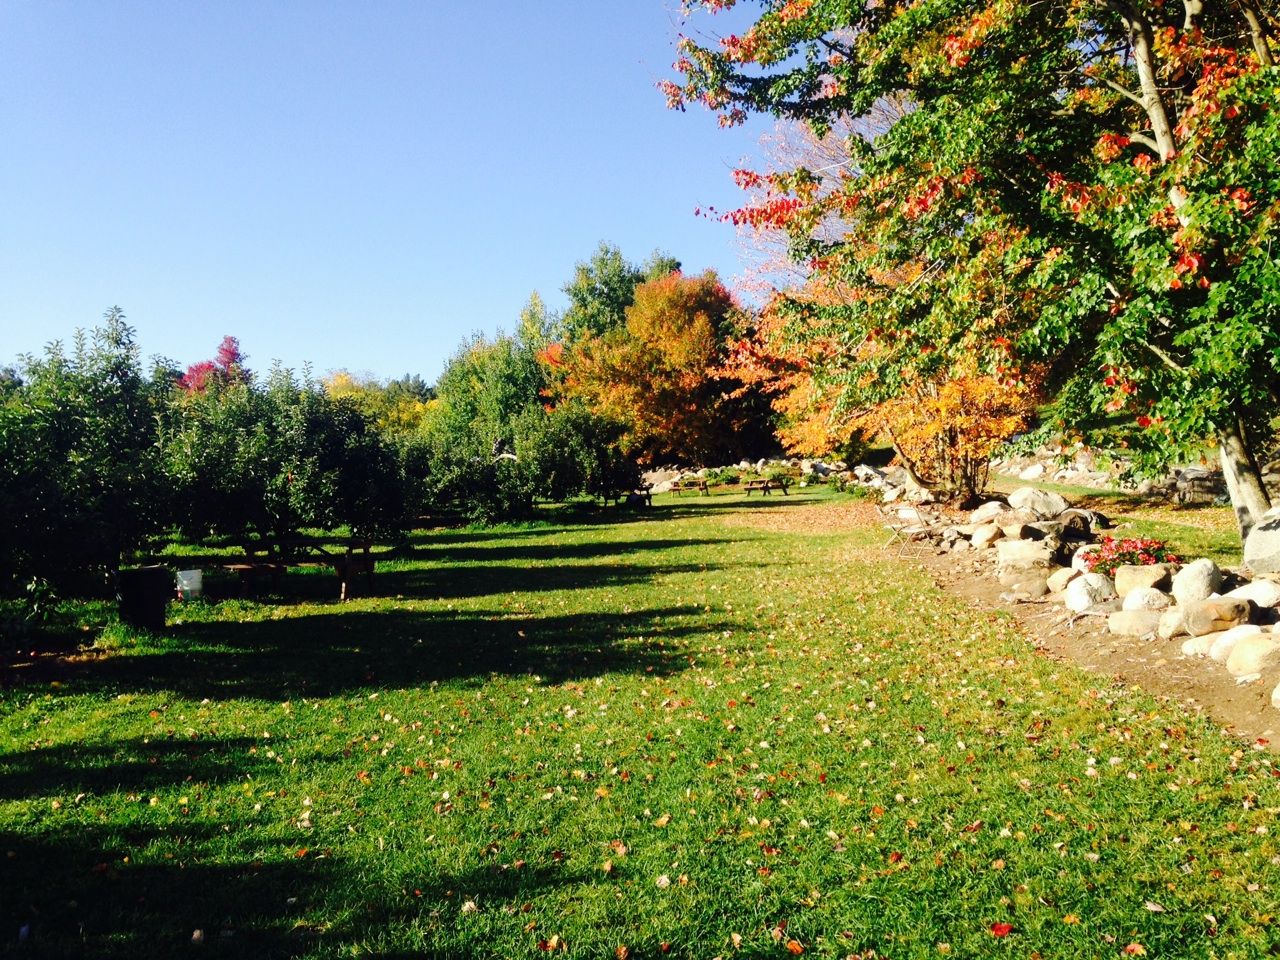 Our idyllic picnic area. Enjoy some of New England's best.